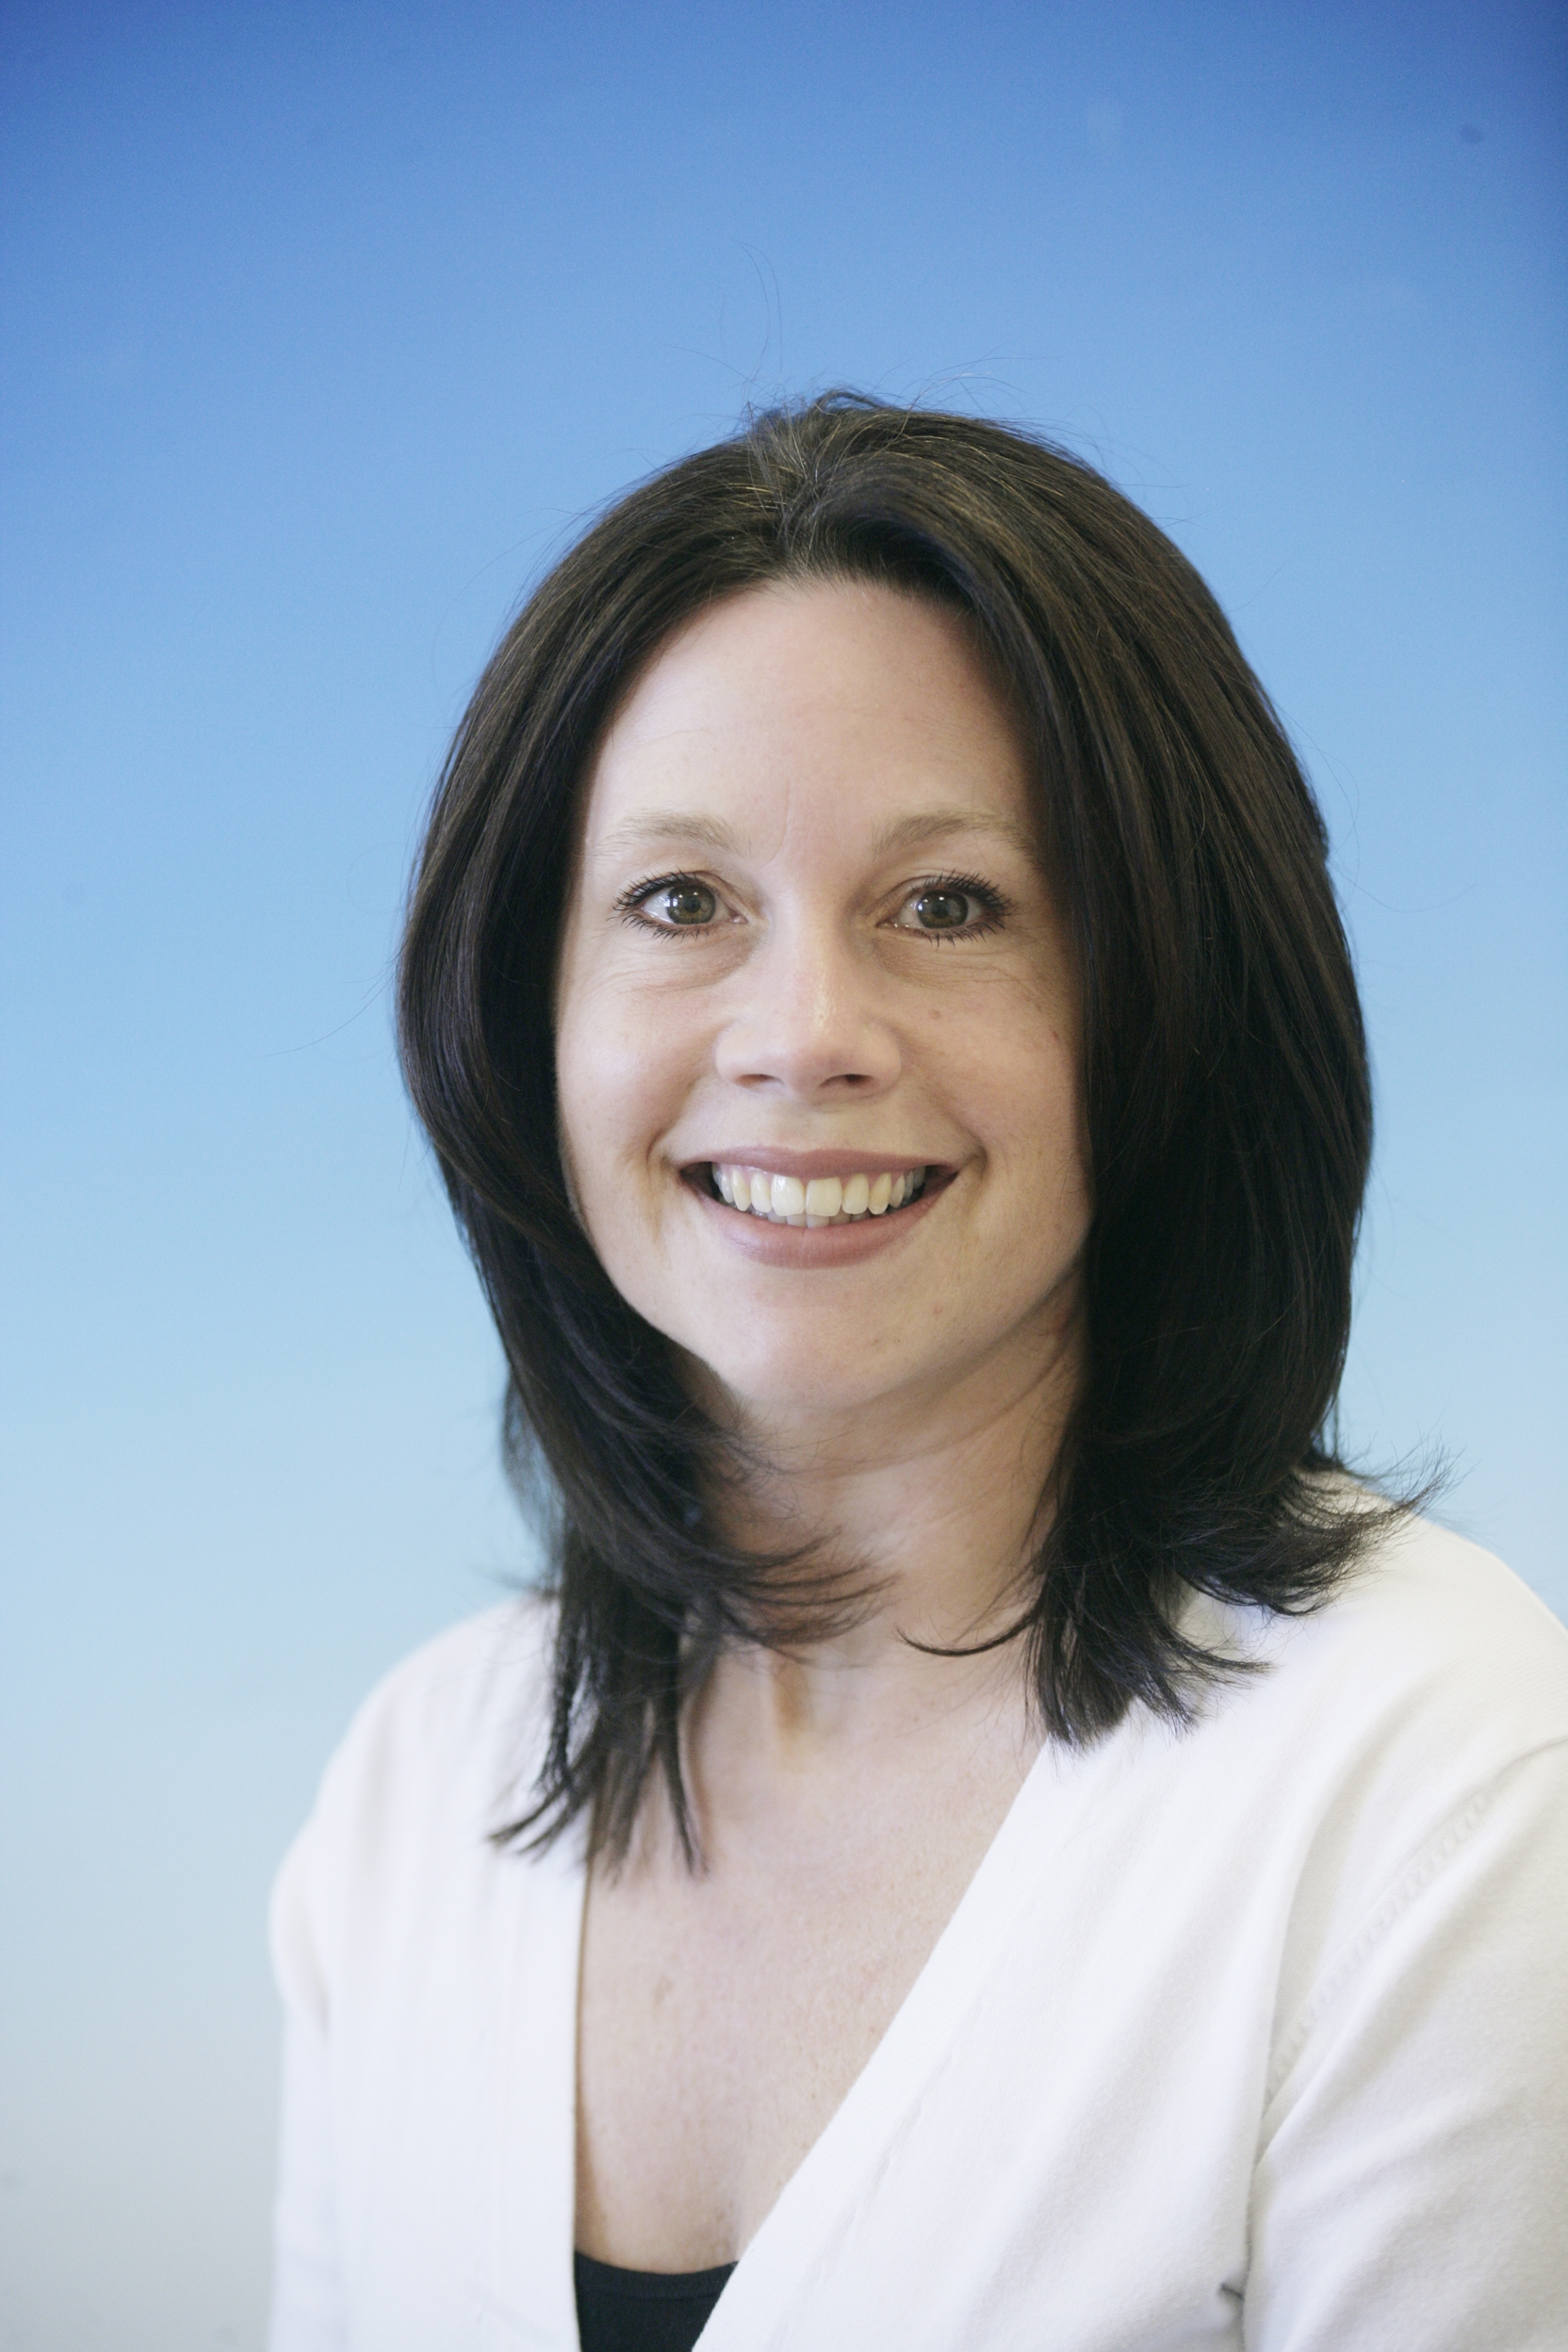 Image of Dr Lucy Akehurst